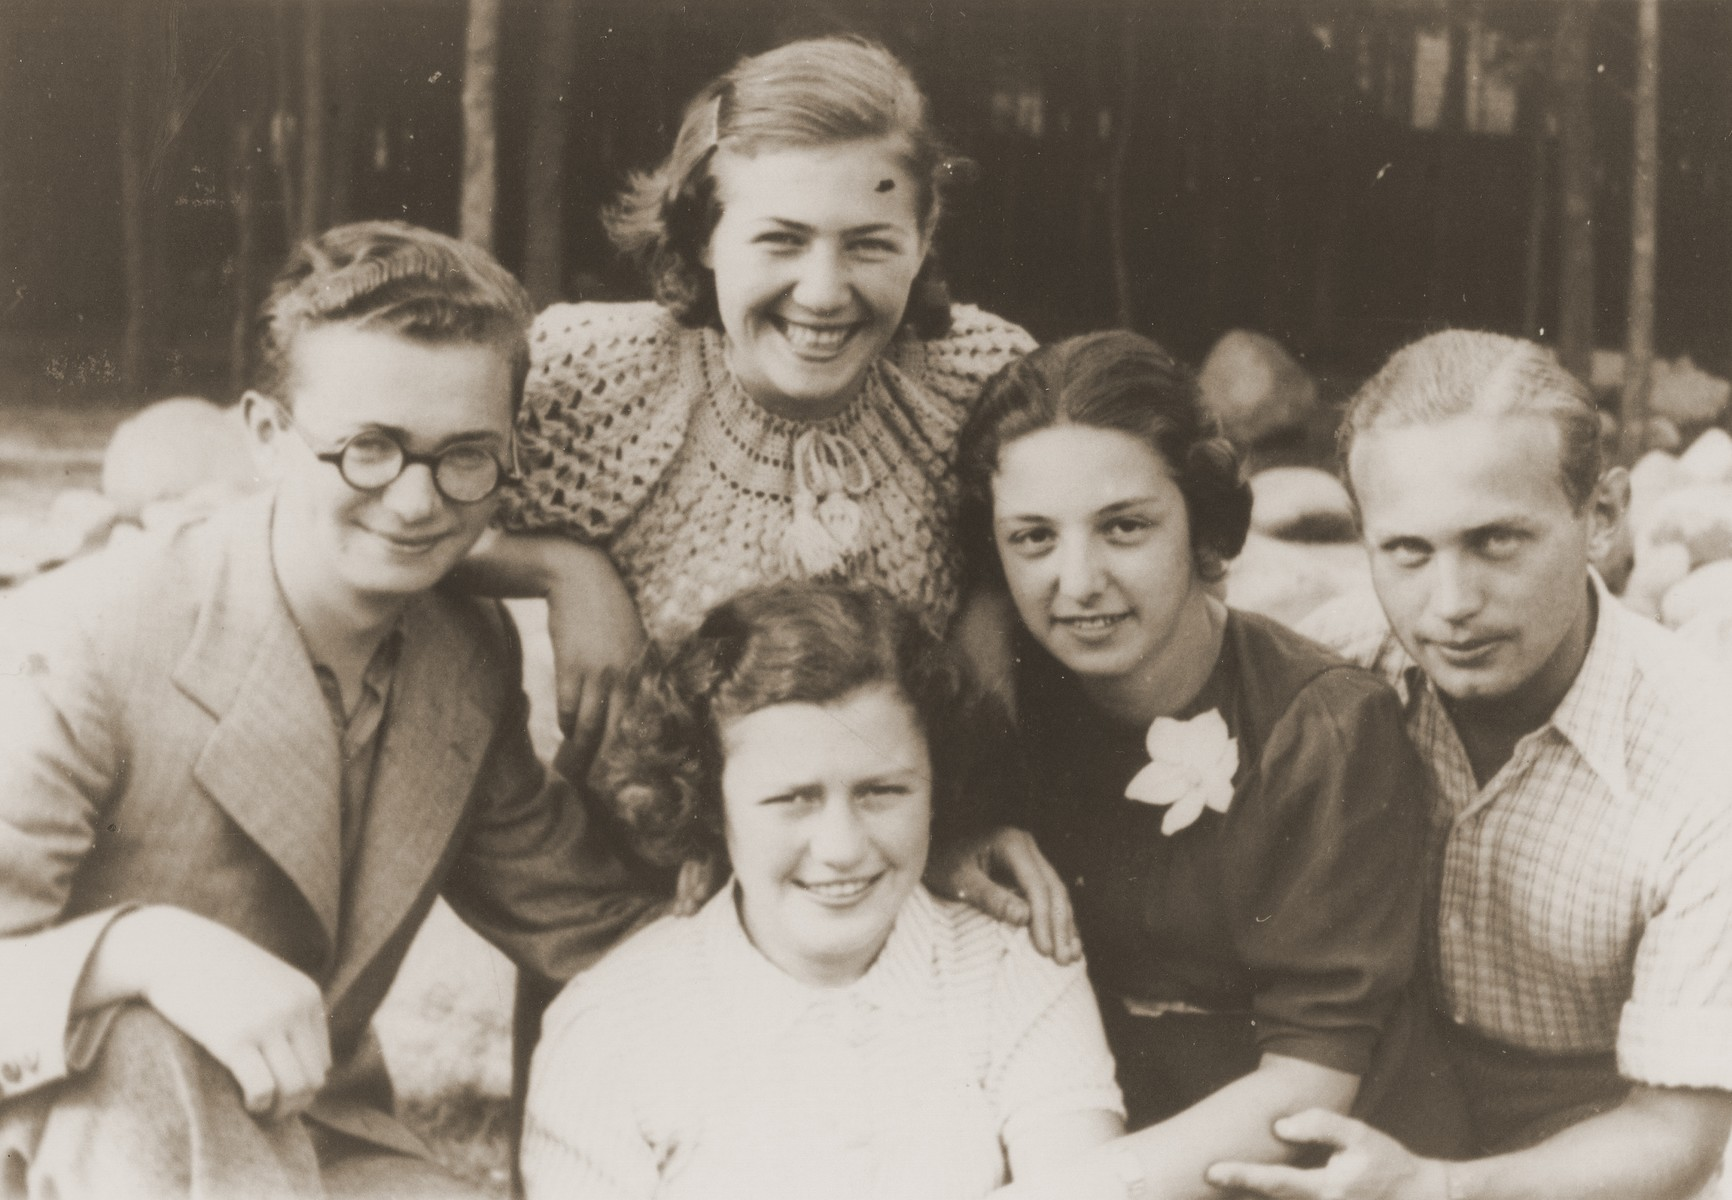 Rivka Radzinski (second from the right) poses with a group of friends while on vacation.